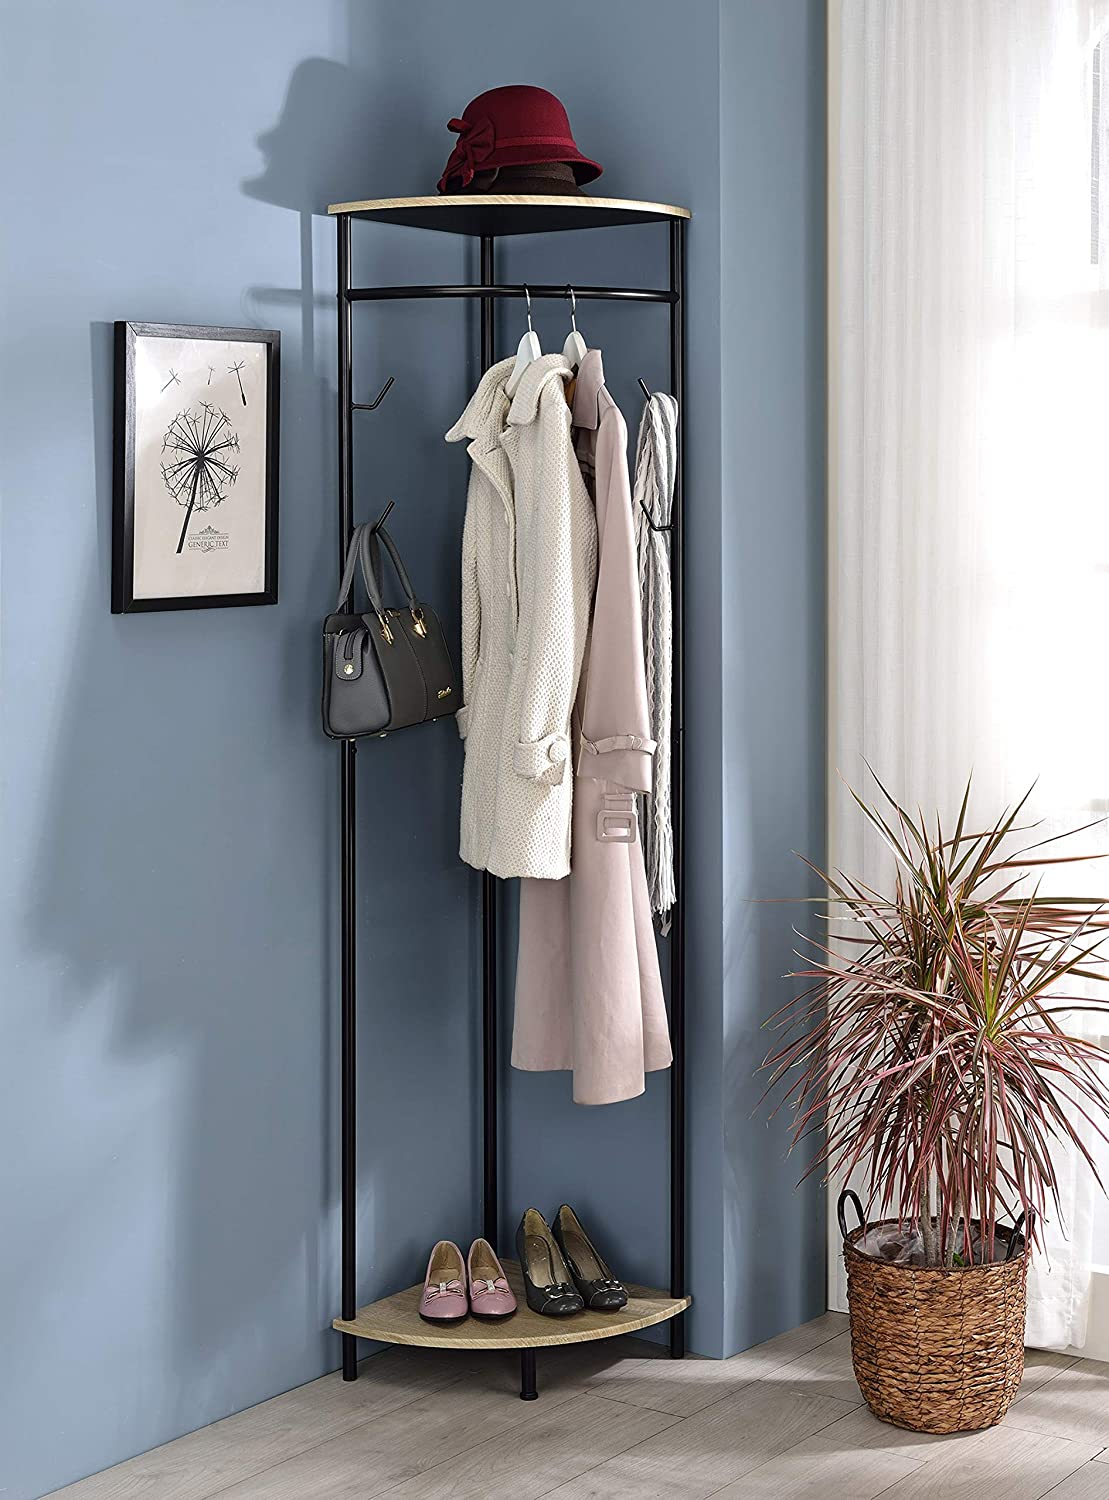 Kings Brand Furniture - Pasmore Corner Hall Tree Coat Rack with Shelf & Storage